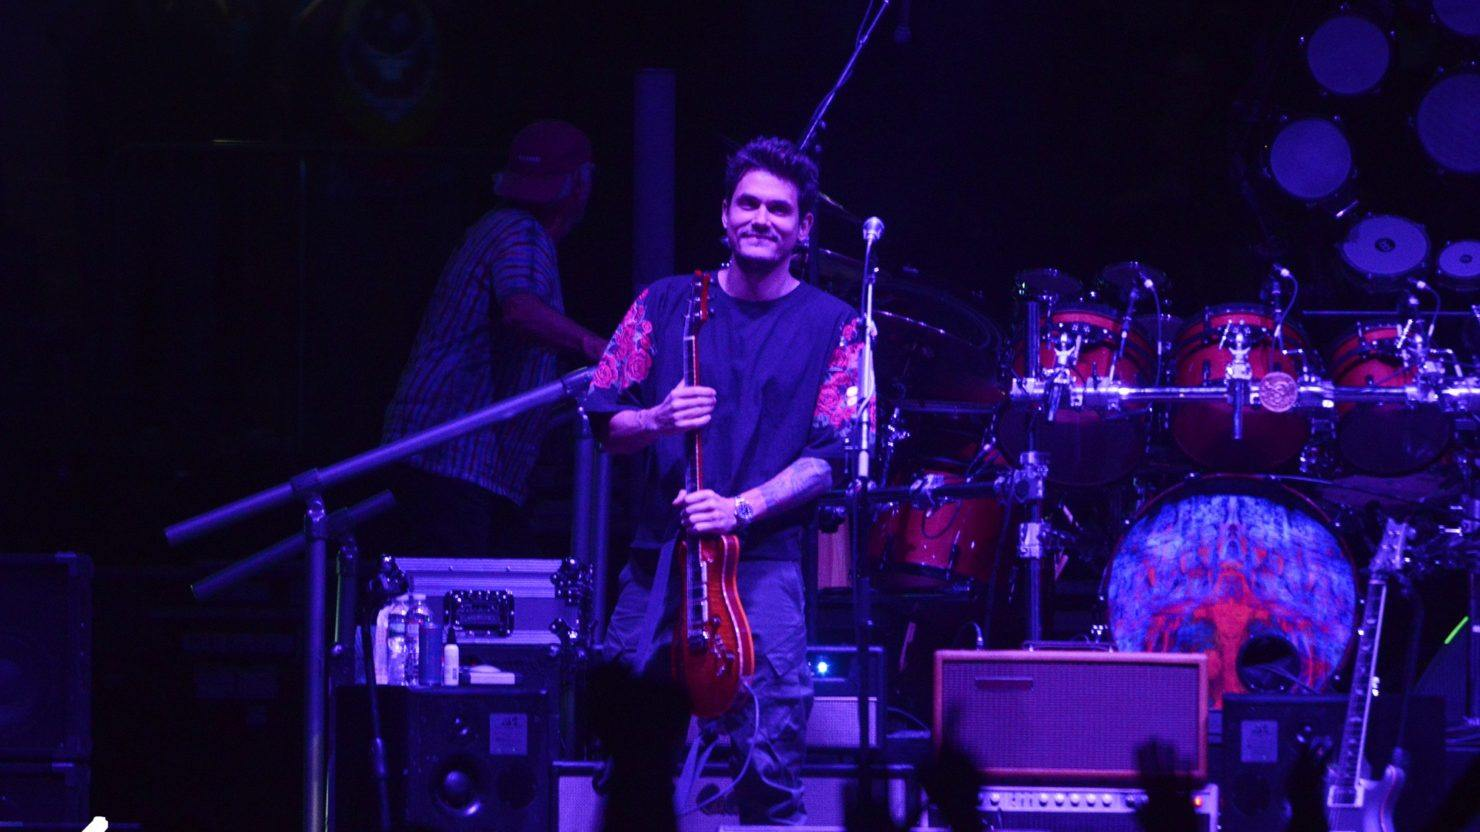 John Mayer Talks Dead & Company And Lockn' Festival On 'Tales From The Golden Road'